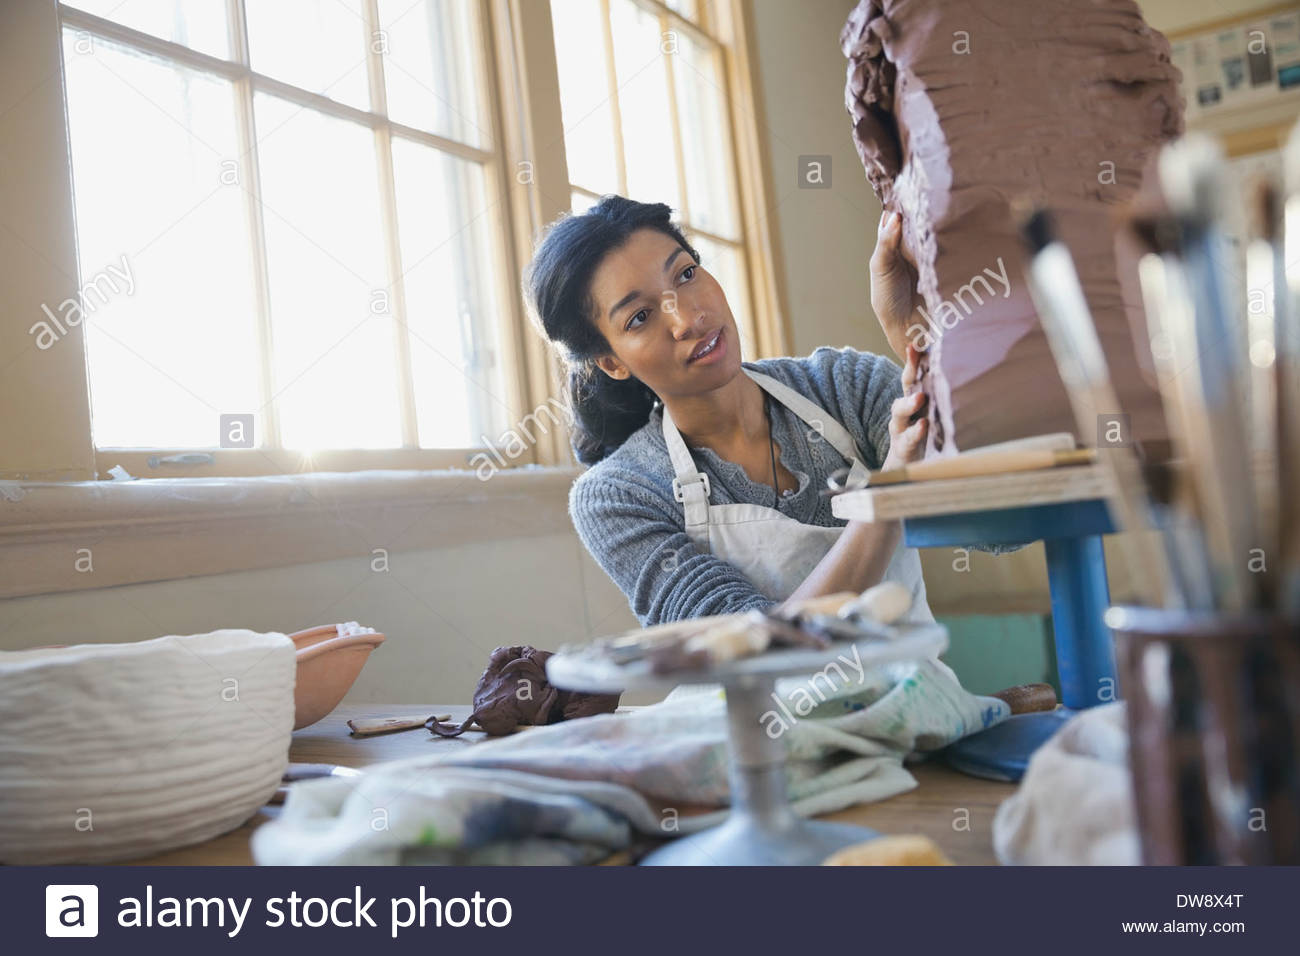 Student working on clay sculpture in art class - Stock Image